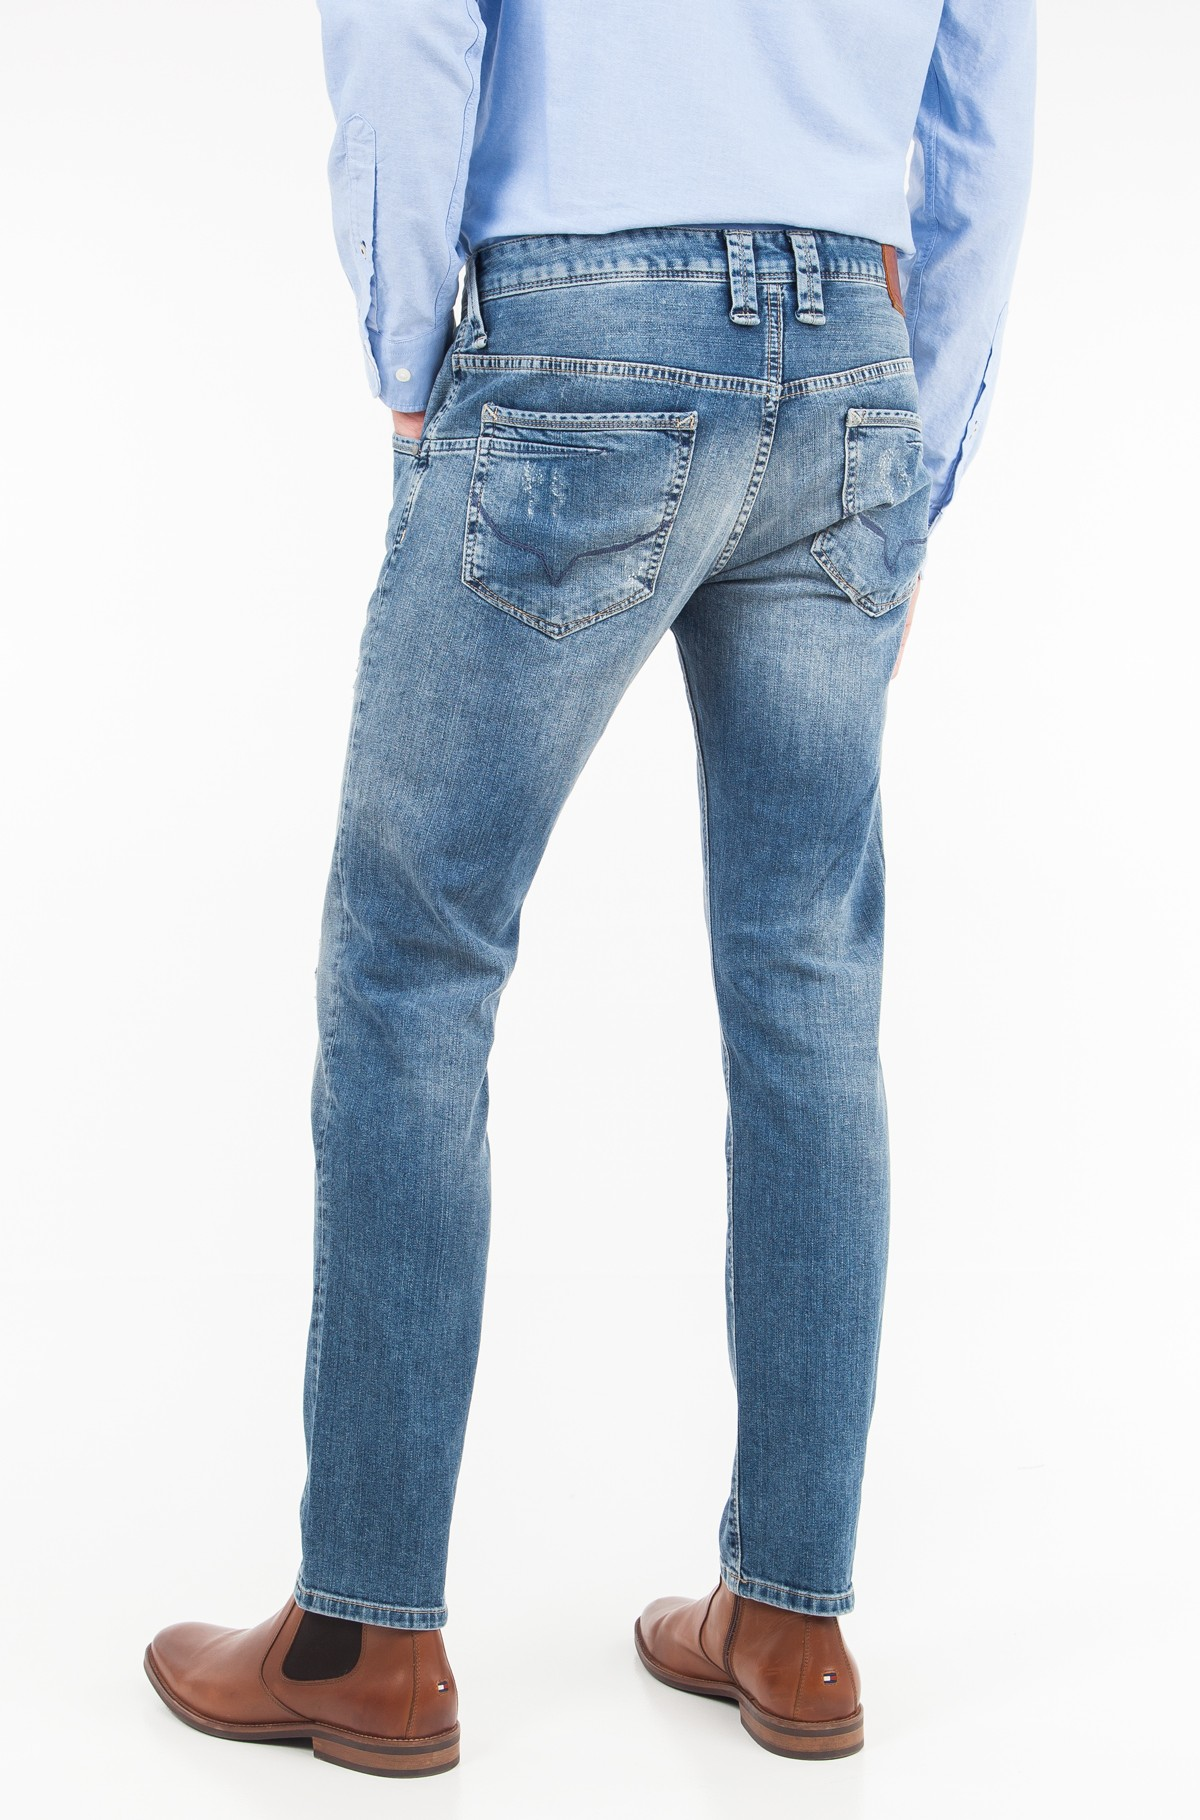 Jeans Zinc/PM201519RB1-full-2